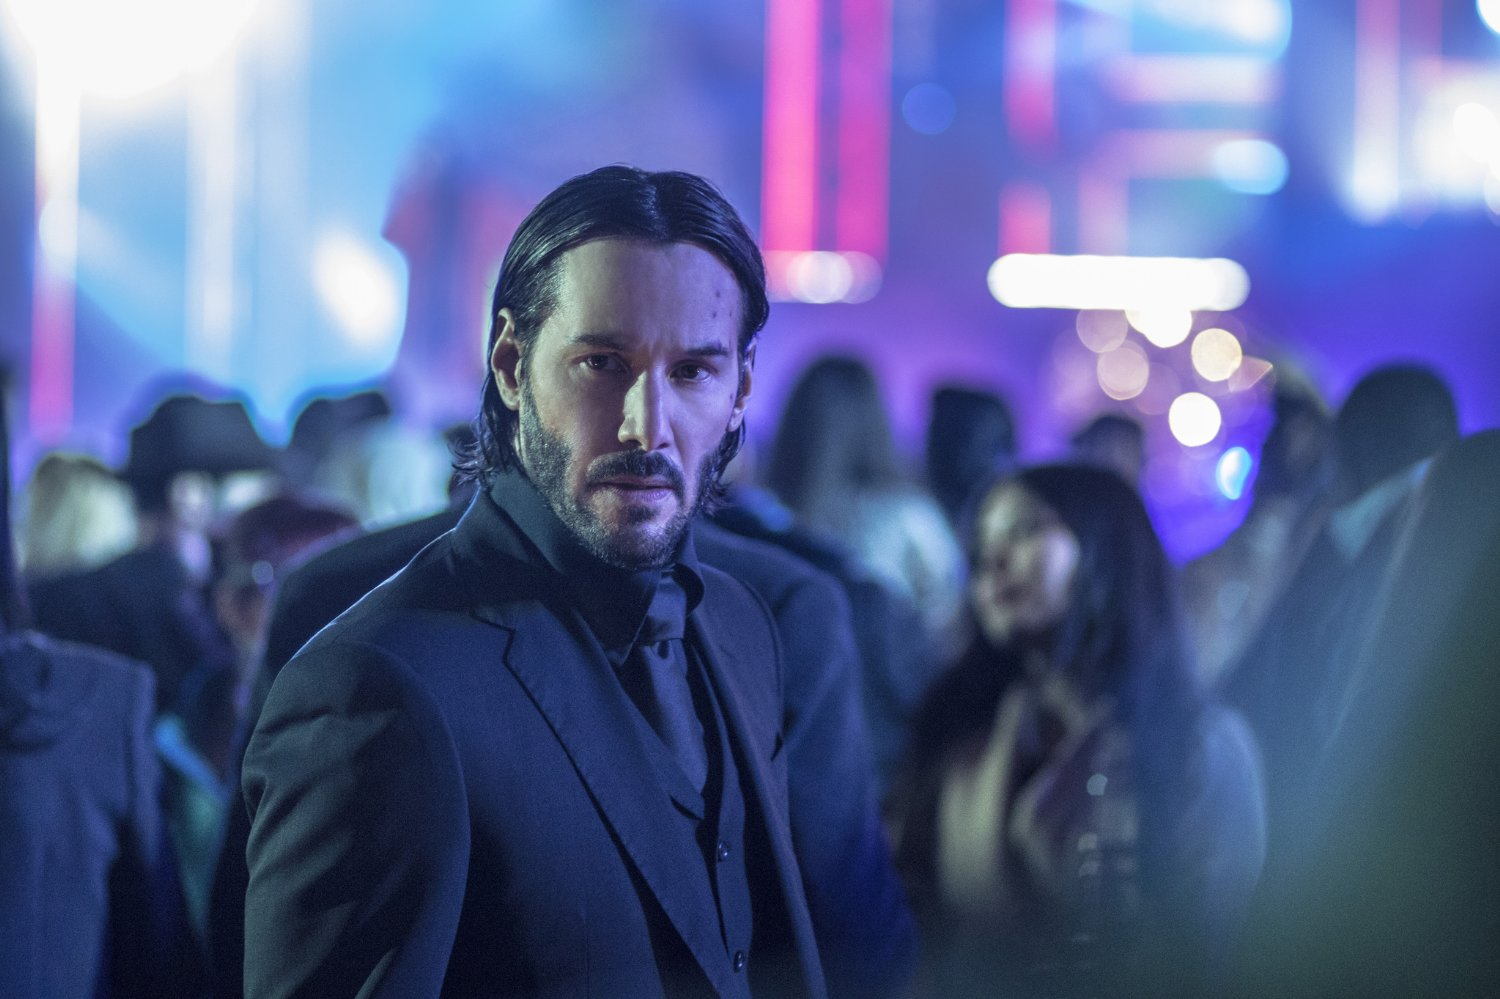 john-wick-chapter-2-xlg-10outubro2016-2